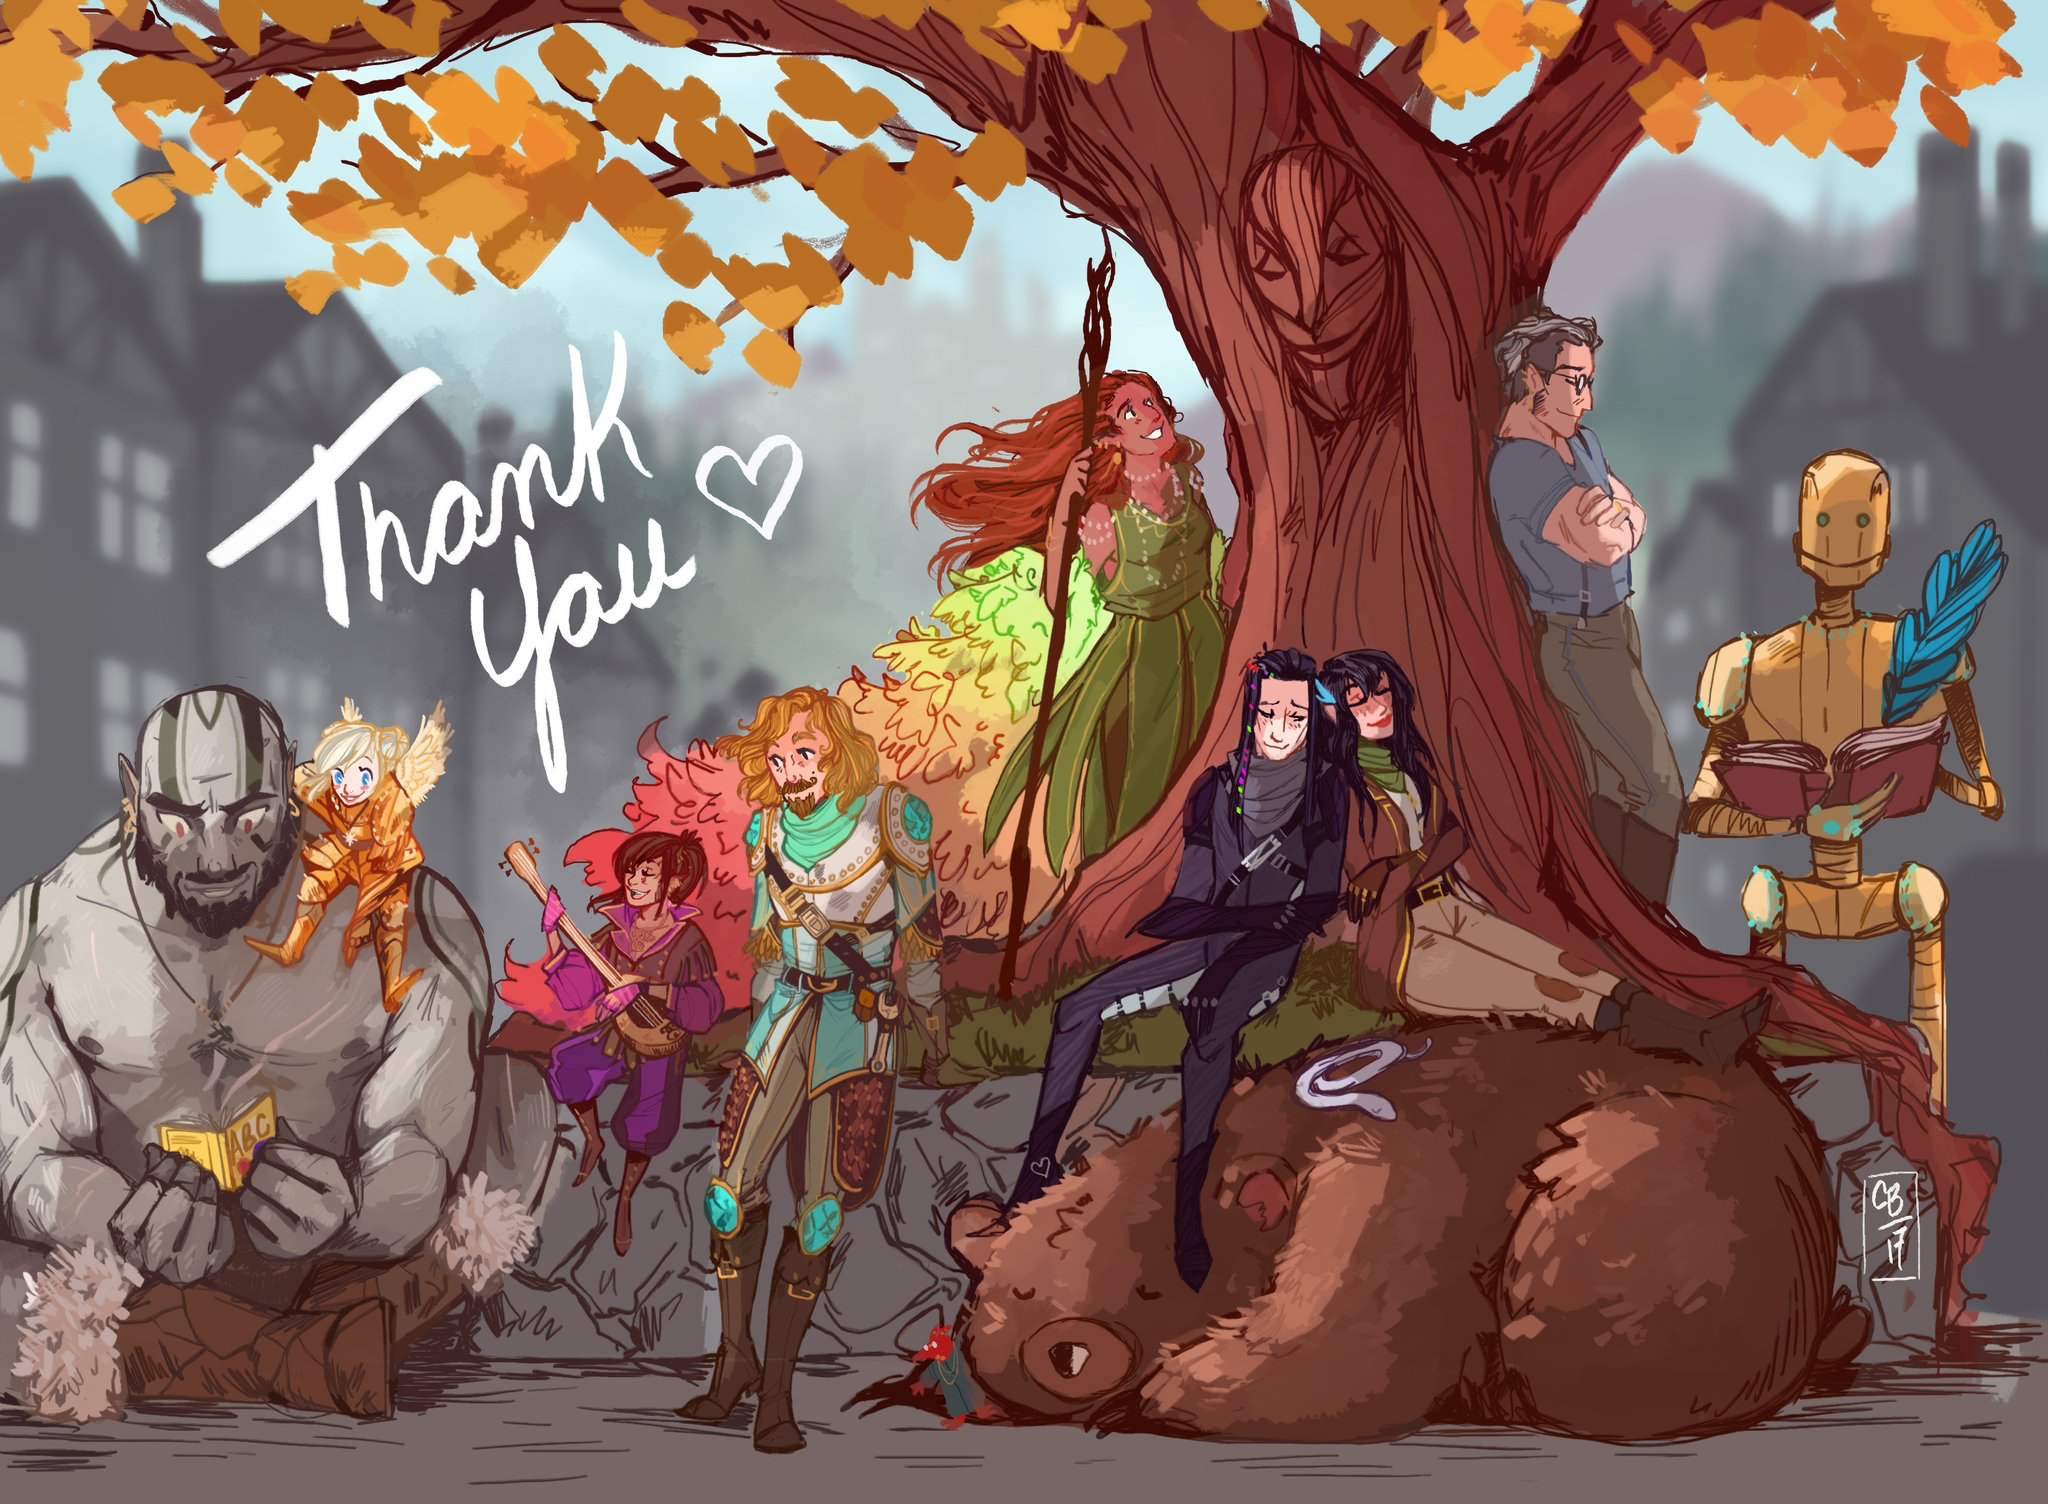 The End Of An Era Vox Machina Critical Role Critical Role Critical Role Fan Art Critical Role Campaign 2 A 10 player campaign of shadowrun and a mech warrior table rpg called death from above! critical role fan art